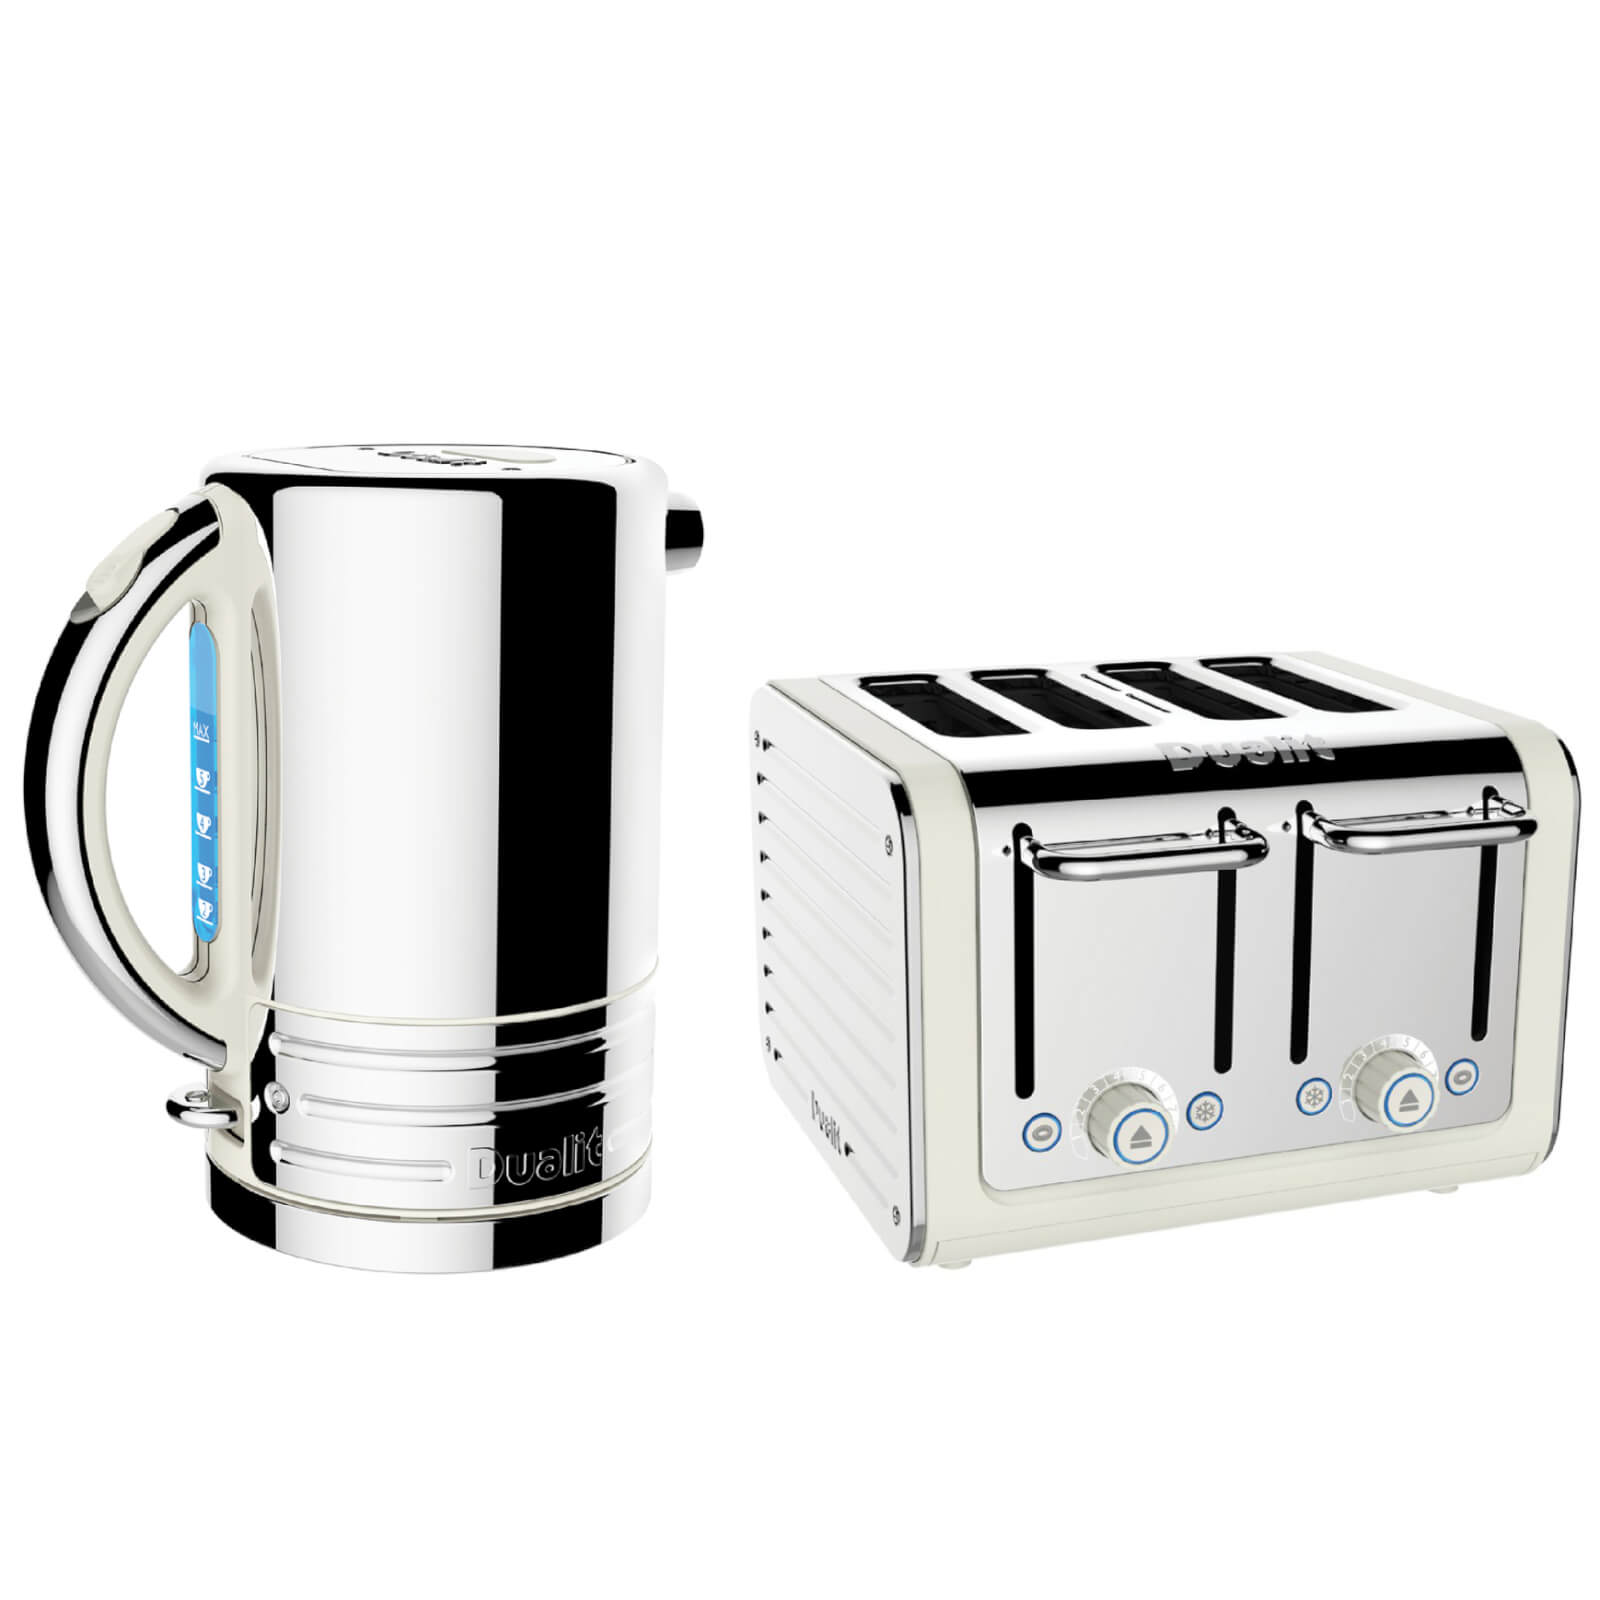 4711bad8275a Dualit Architect Kettle and 4 Slot Toaster Bundle - Canvas | IWOOT